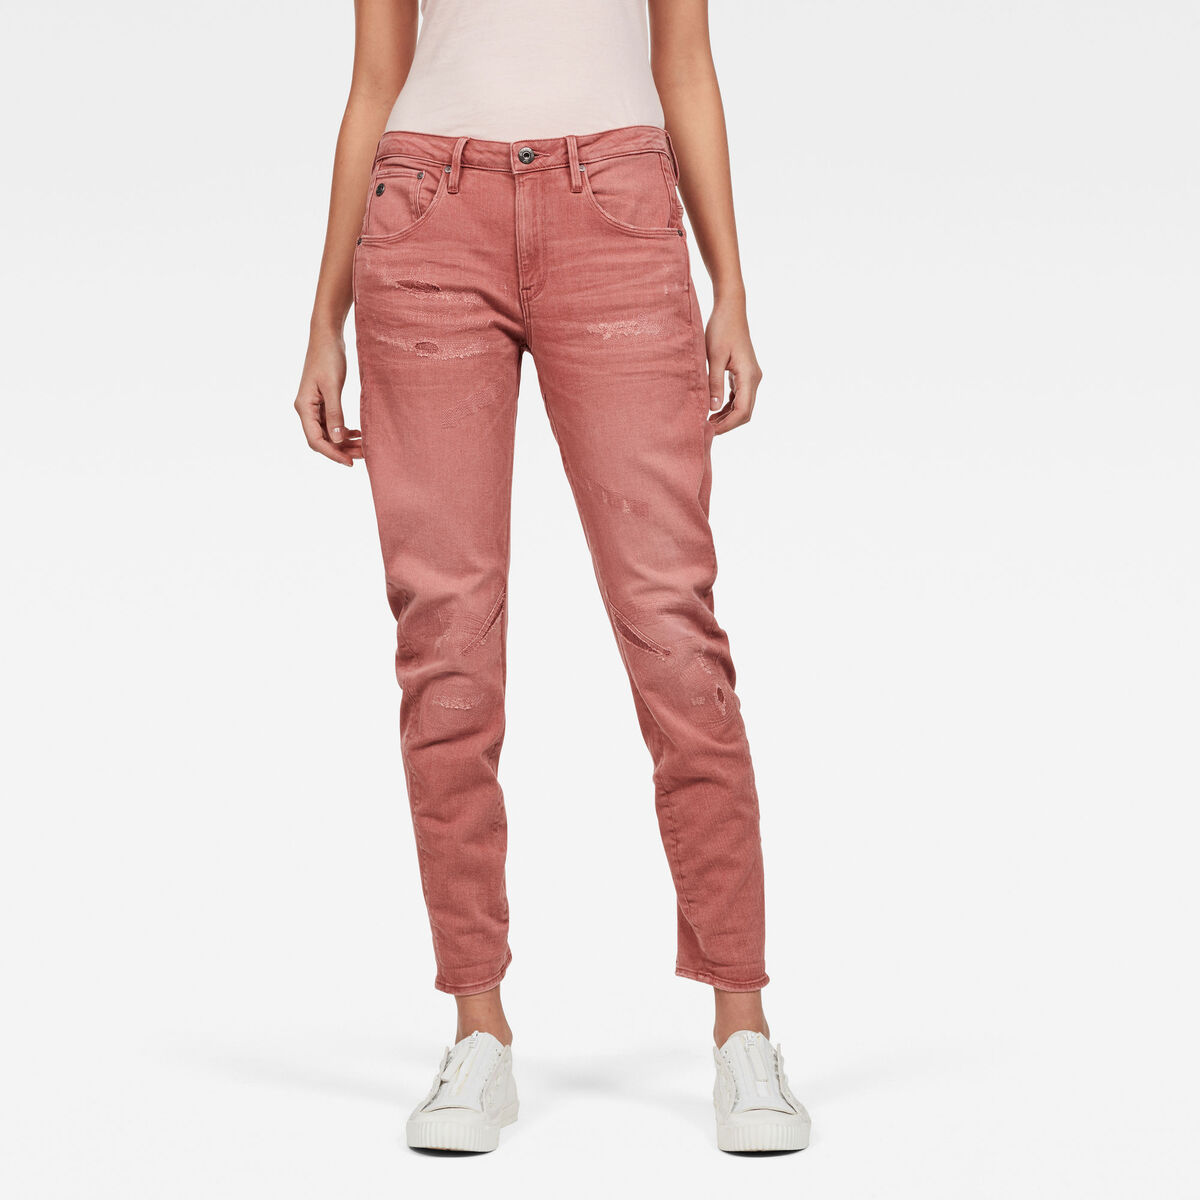 Bild 1 von Arc 3D Low Boyfriend Earthtrace Restored Colored Jeans